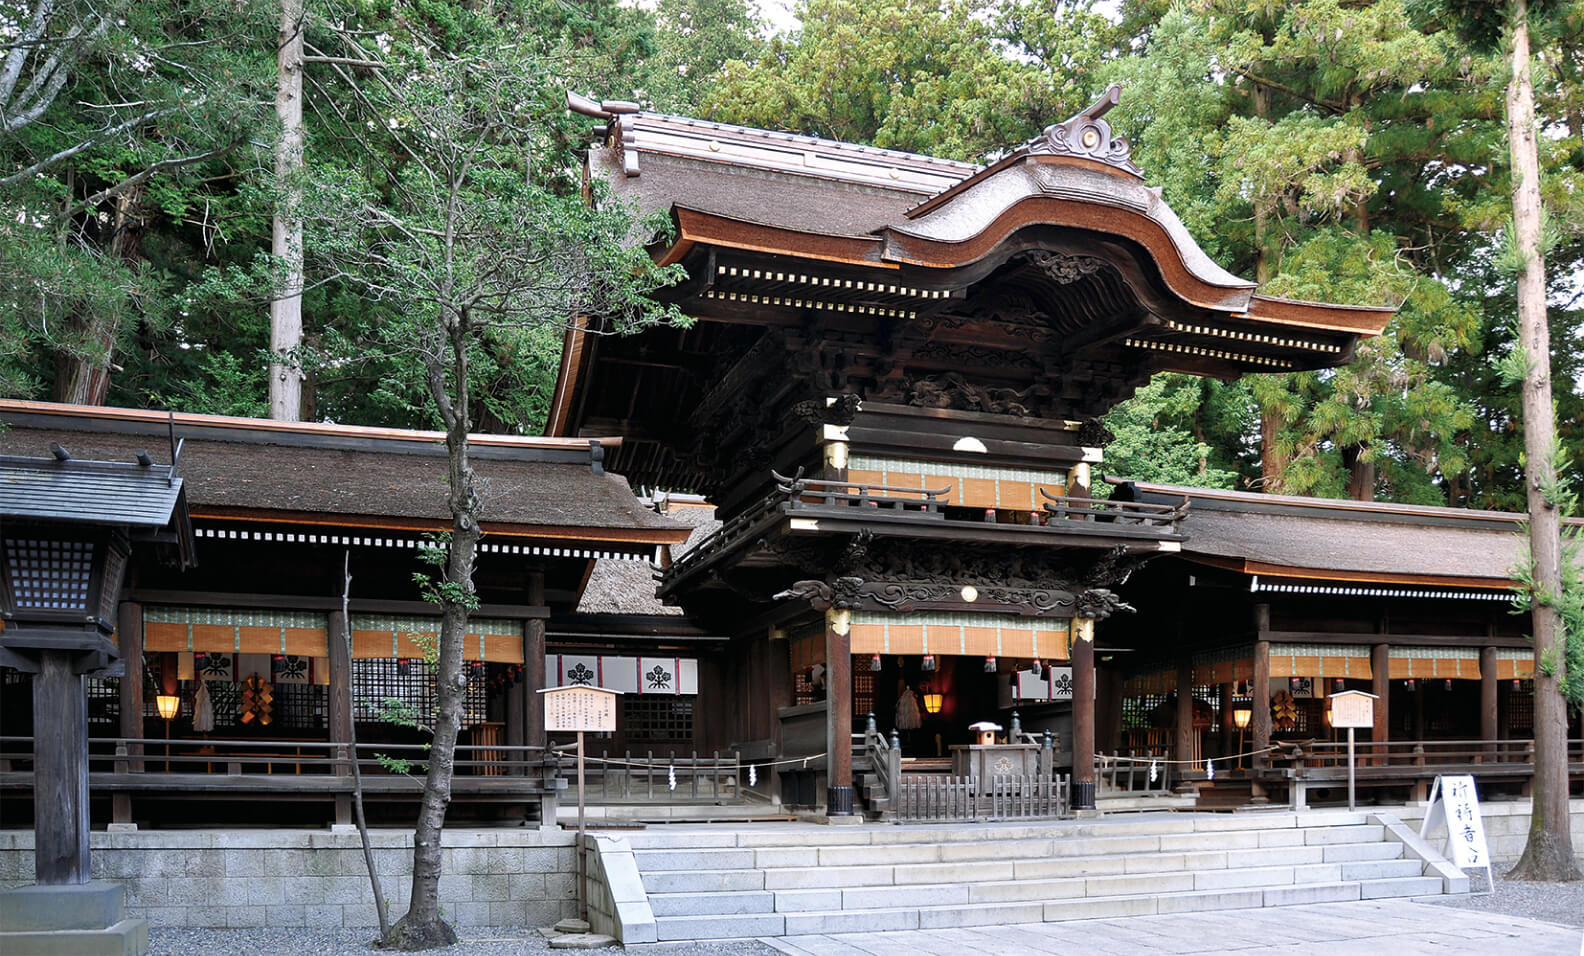 Suwa Grand Shrine, Shimosha Akimiya